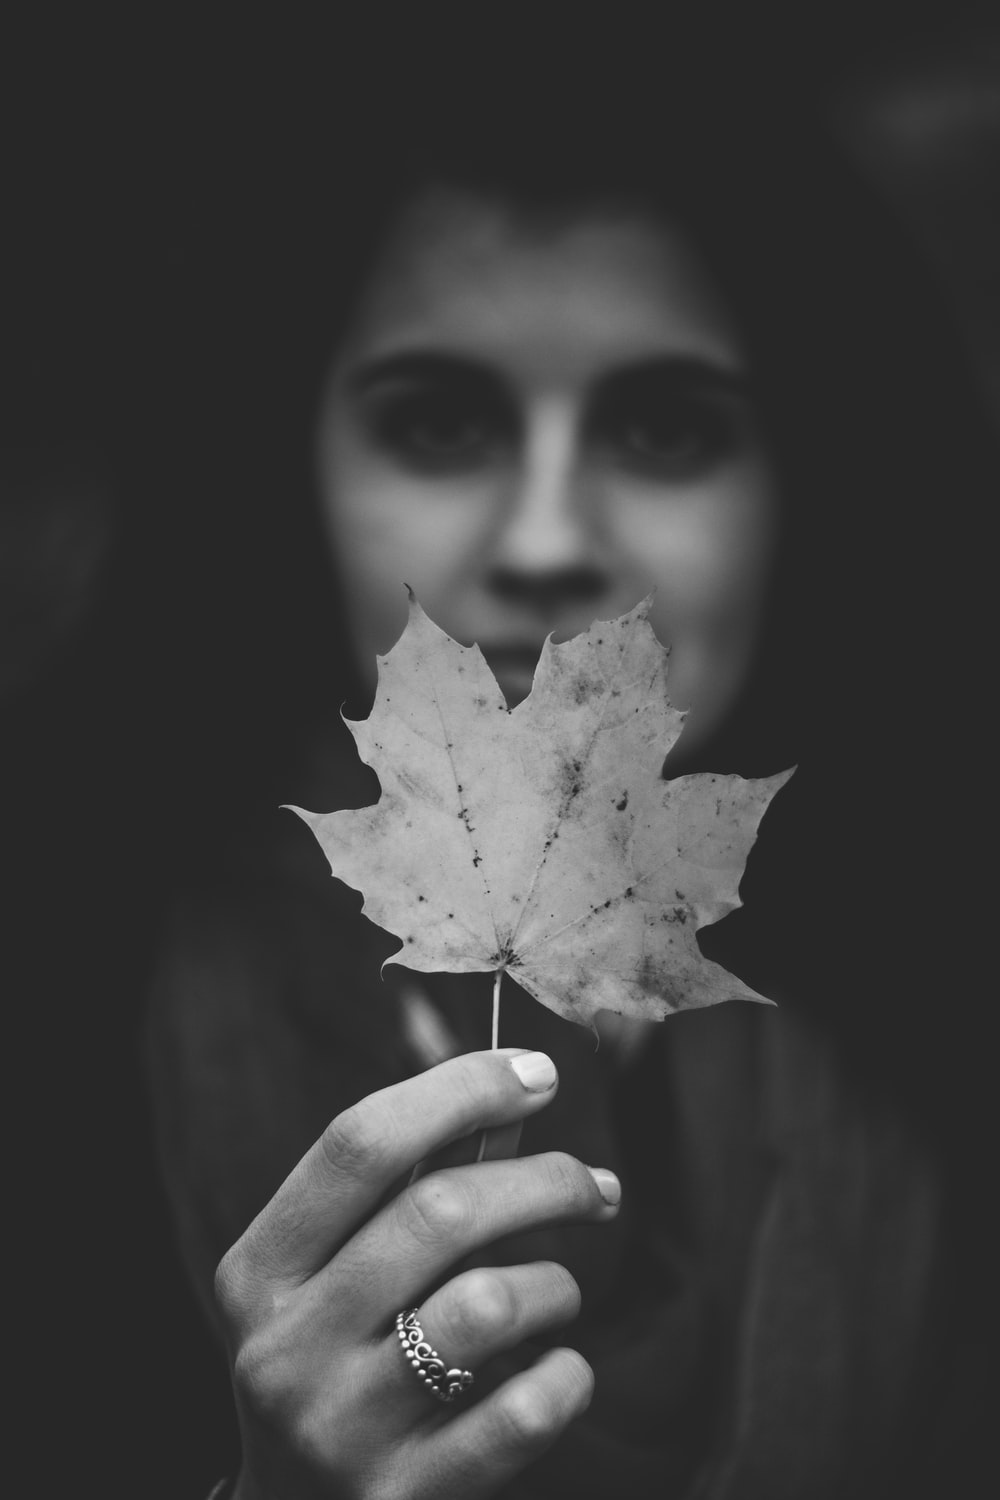 grayscale photography of maple leaf